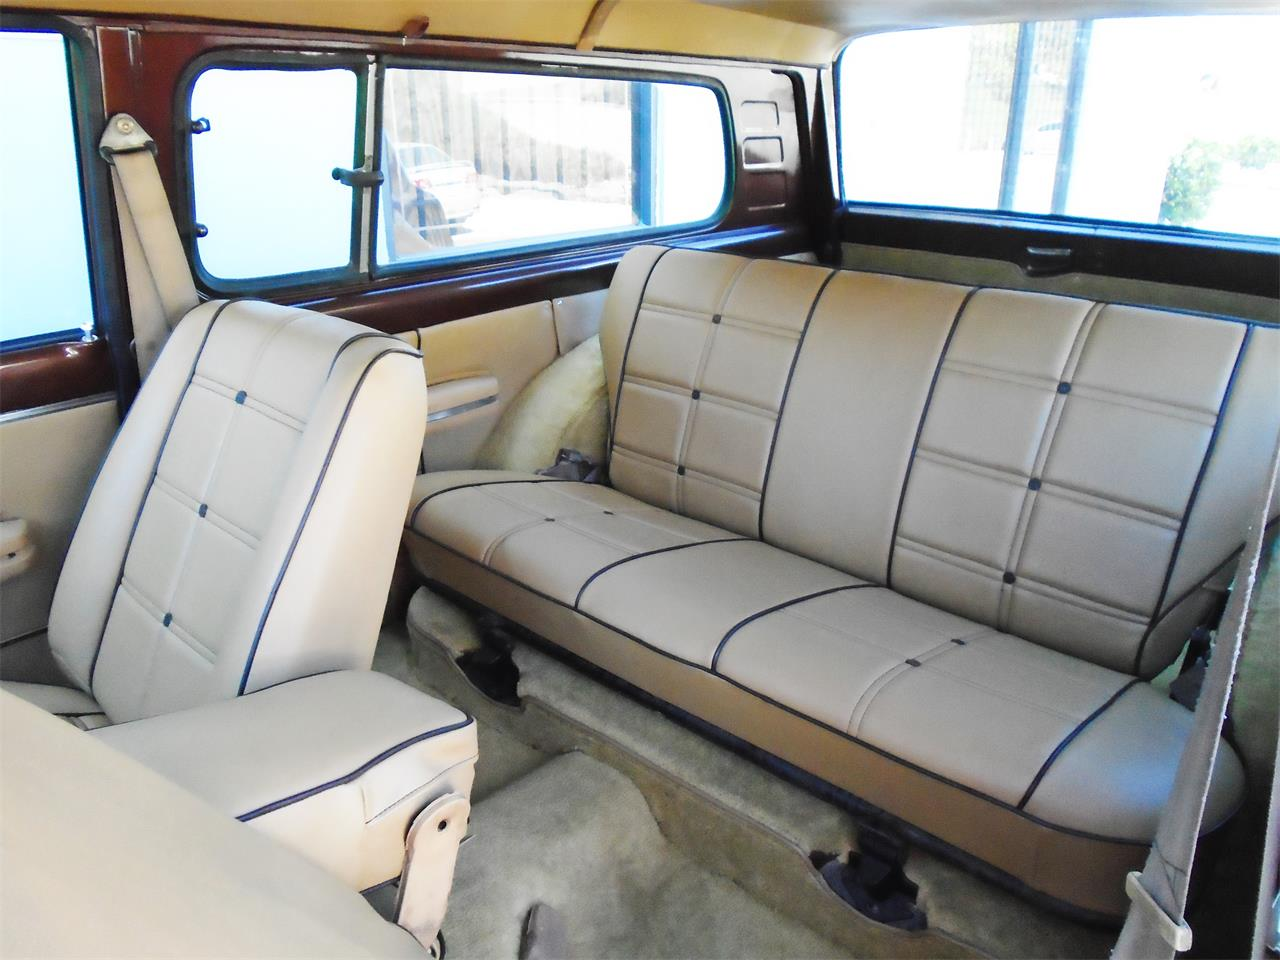 Large Picture of 1977 Jeep Cherokee Chief located in San Diego California - $49,995.00 Offered by a Private Seller - FS45